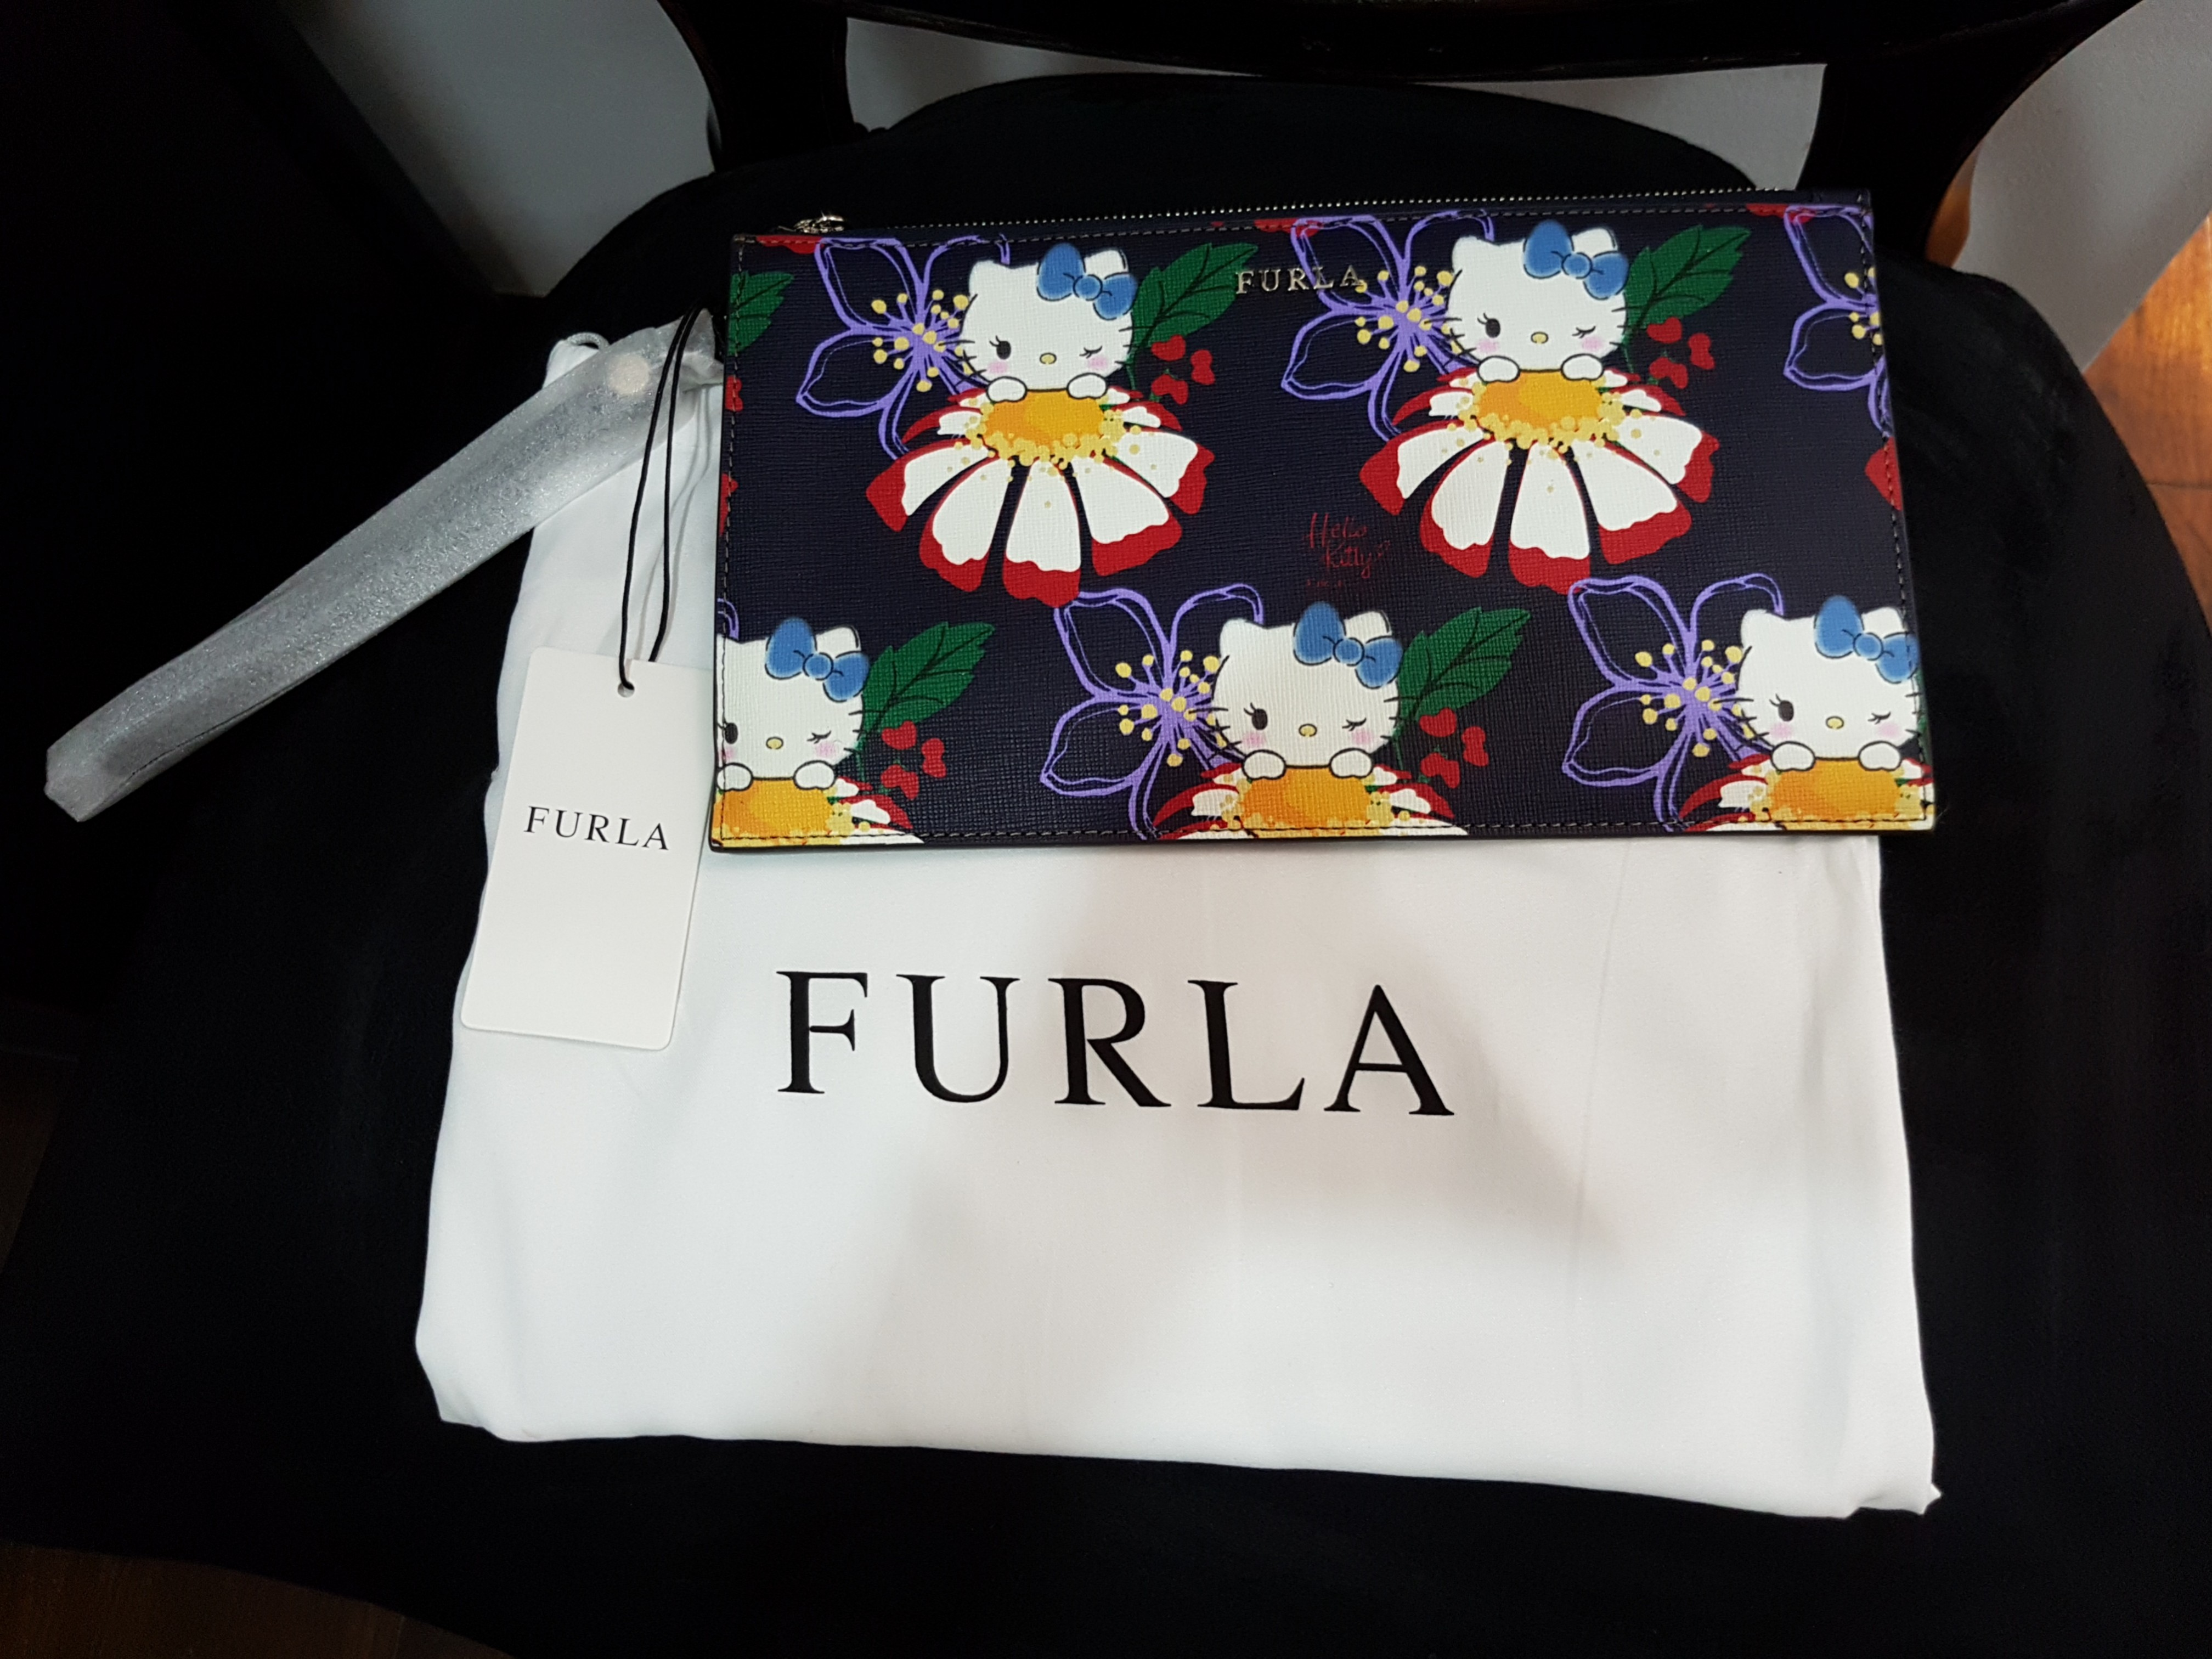 e307688c4 Furla x Hello Kitty clutch, Women's Fashion, Bags & Wallets, Clutches on  Carousell